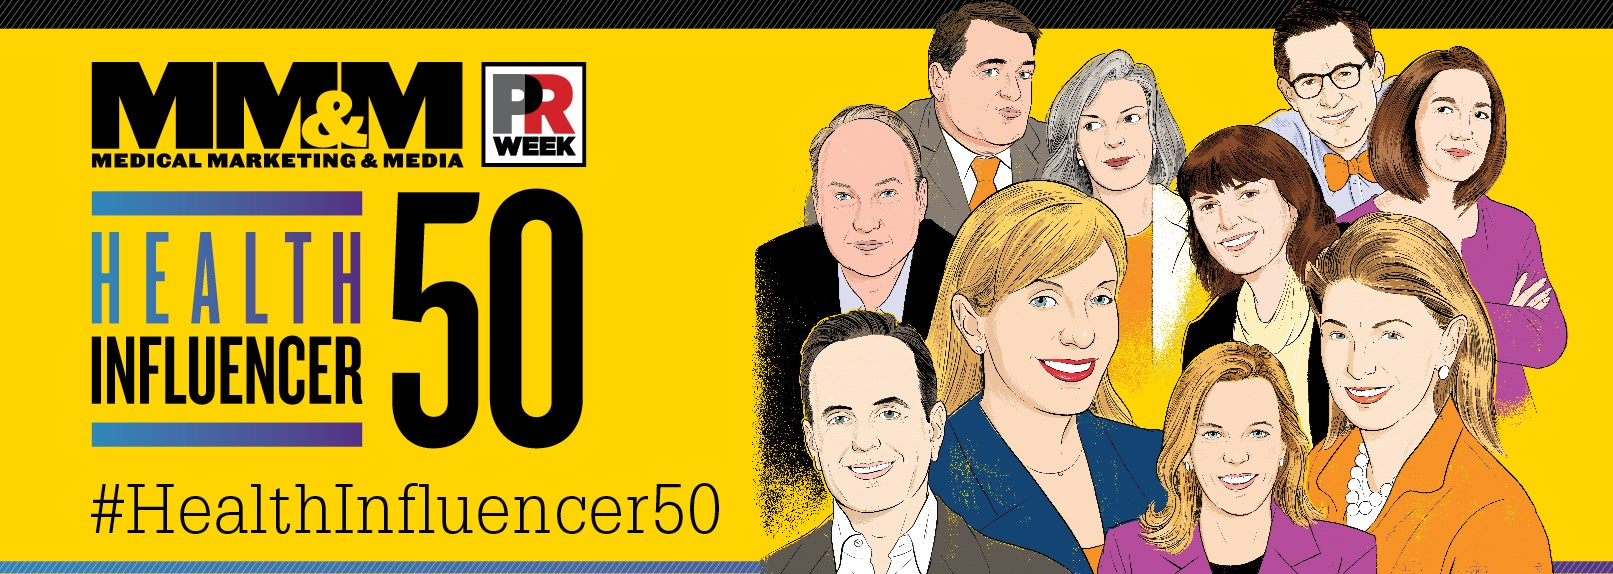 Health Influencer 50